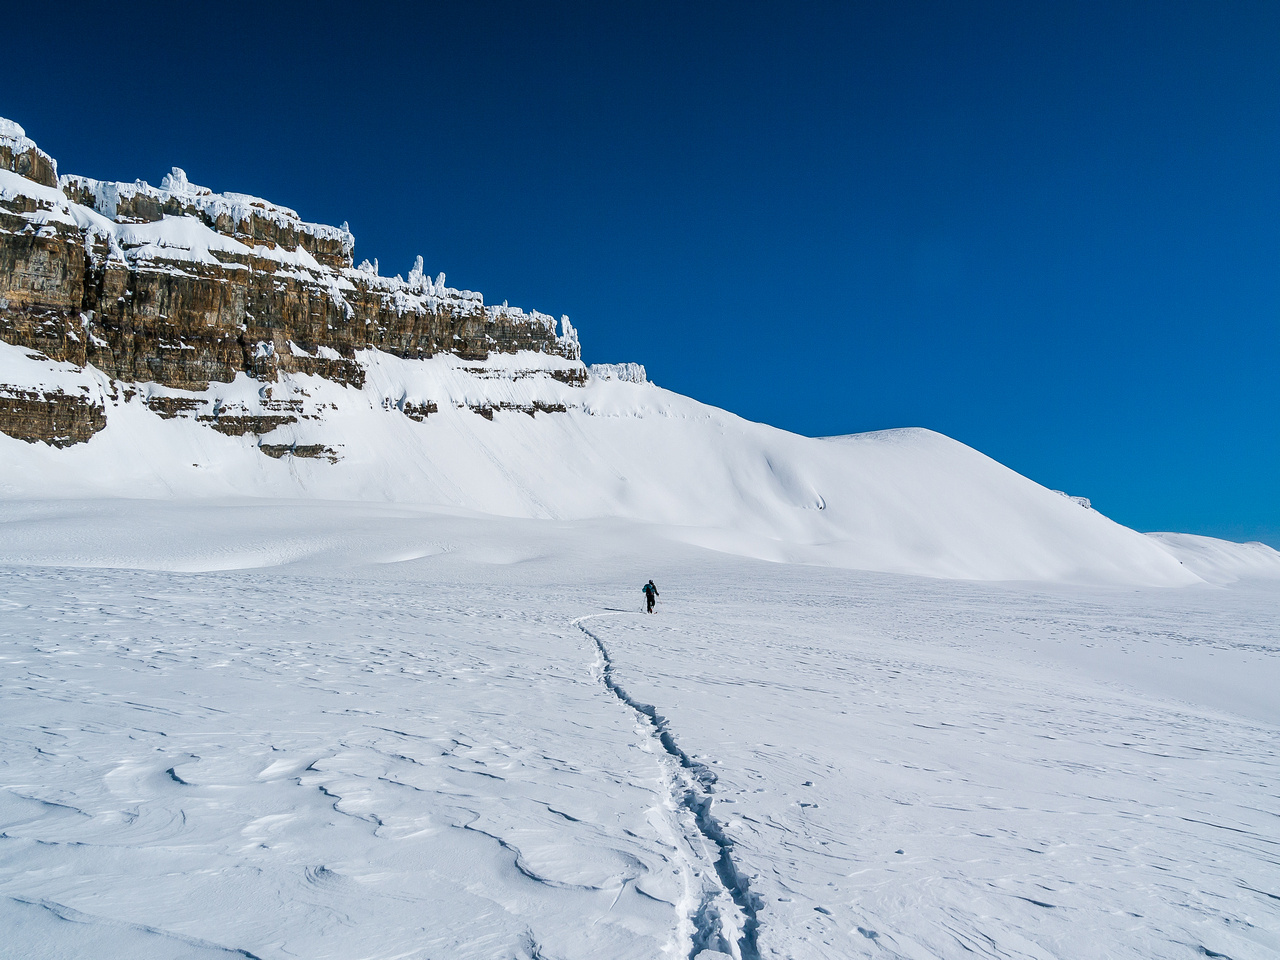 Skiing around the south end of Lilliput under its west face. Daly at right.